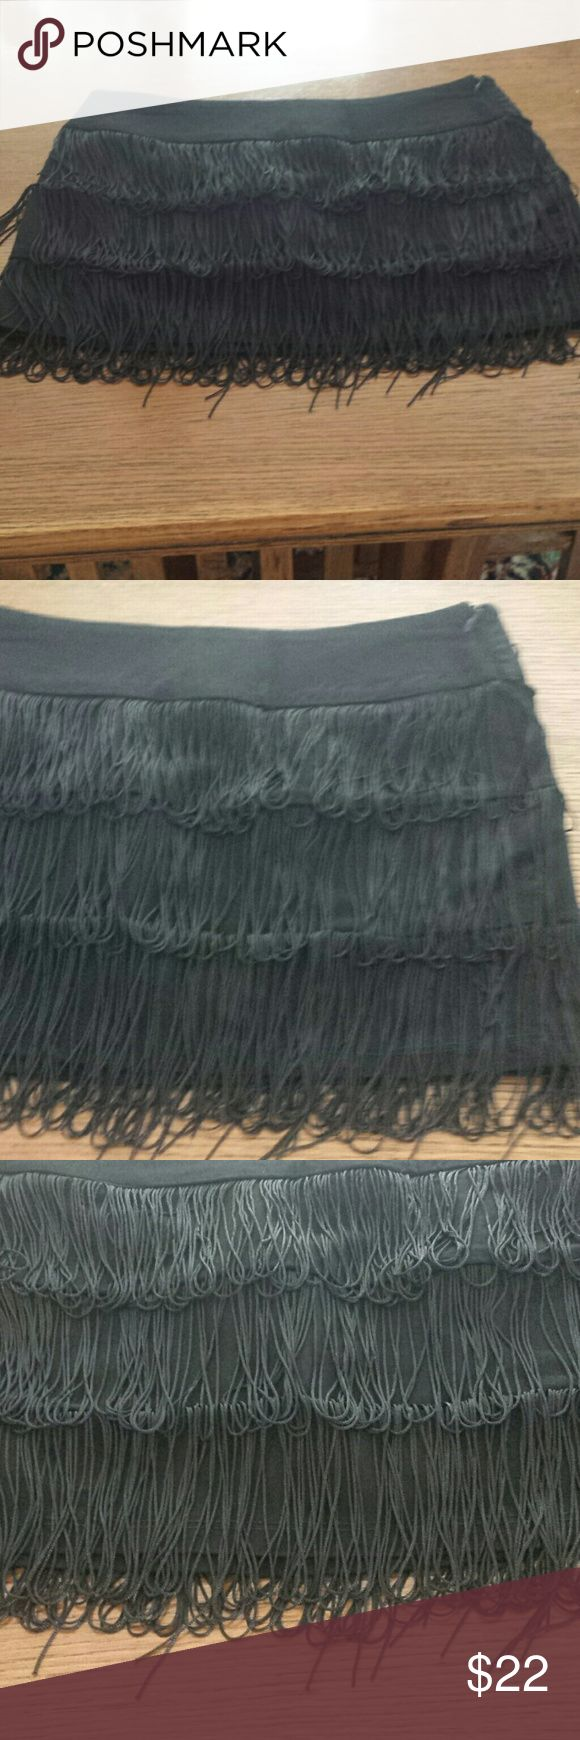 Mini Skirt  JRS Black with 3 rows of silky thread fringes.  98% cotton 2% spandex  Side zipper Body Central Skirts Mini